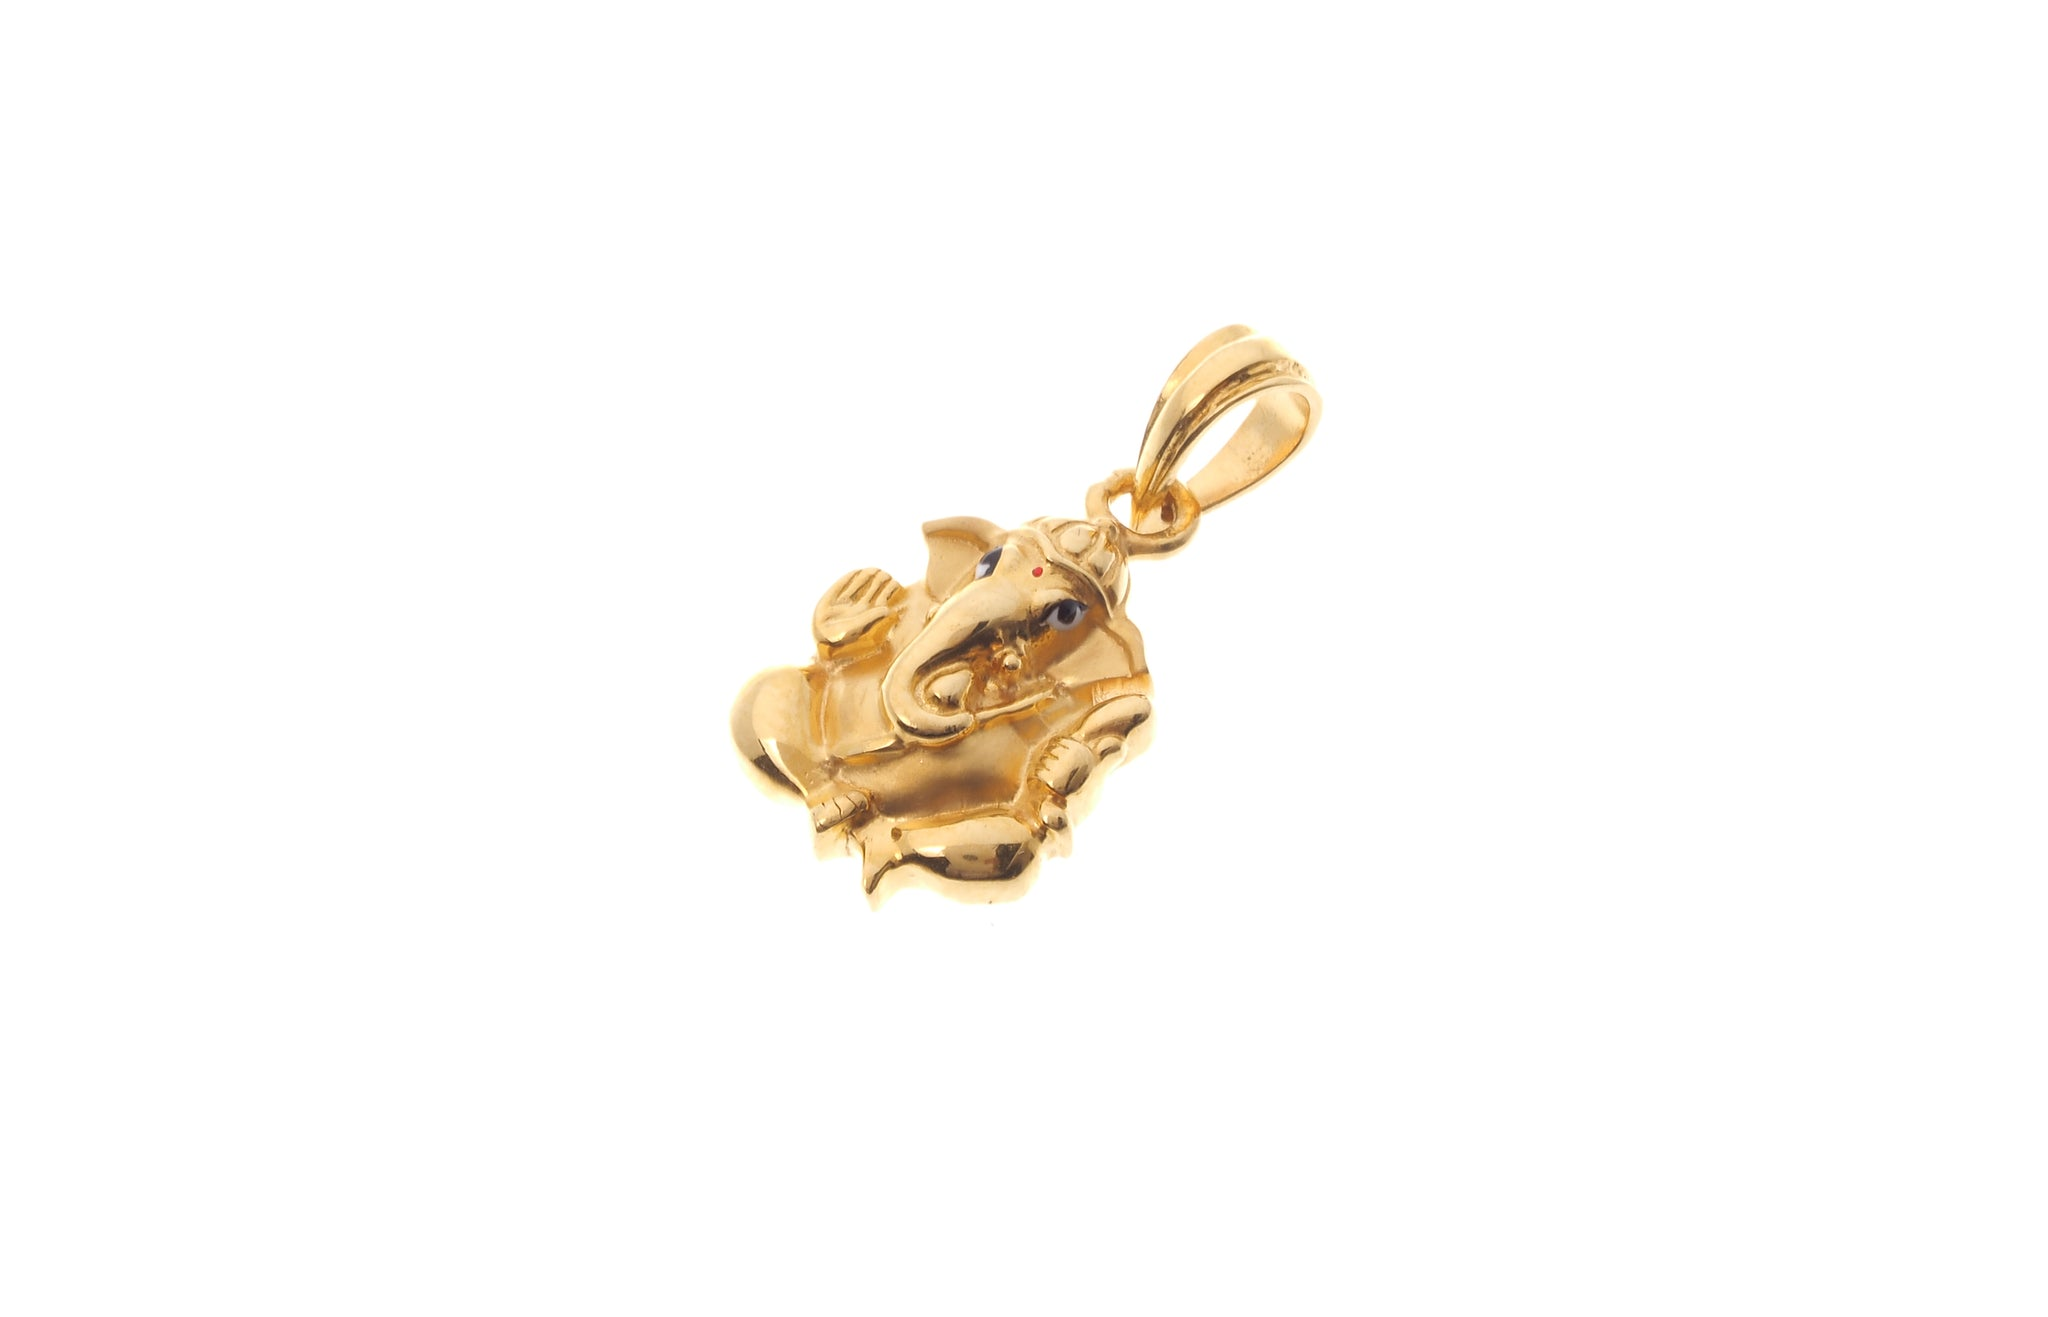 22ct gold ganesh pendant p 6578 online price only minar jewellers 22ct gold ganesh pendant p 6578 online price only aloadofball Image collections